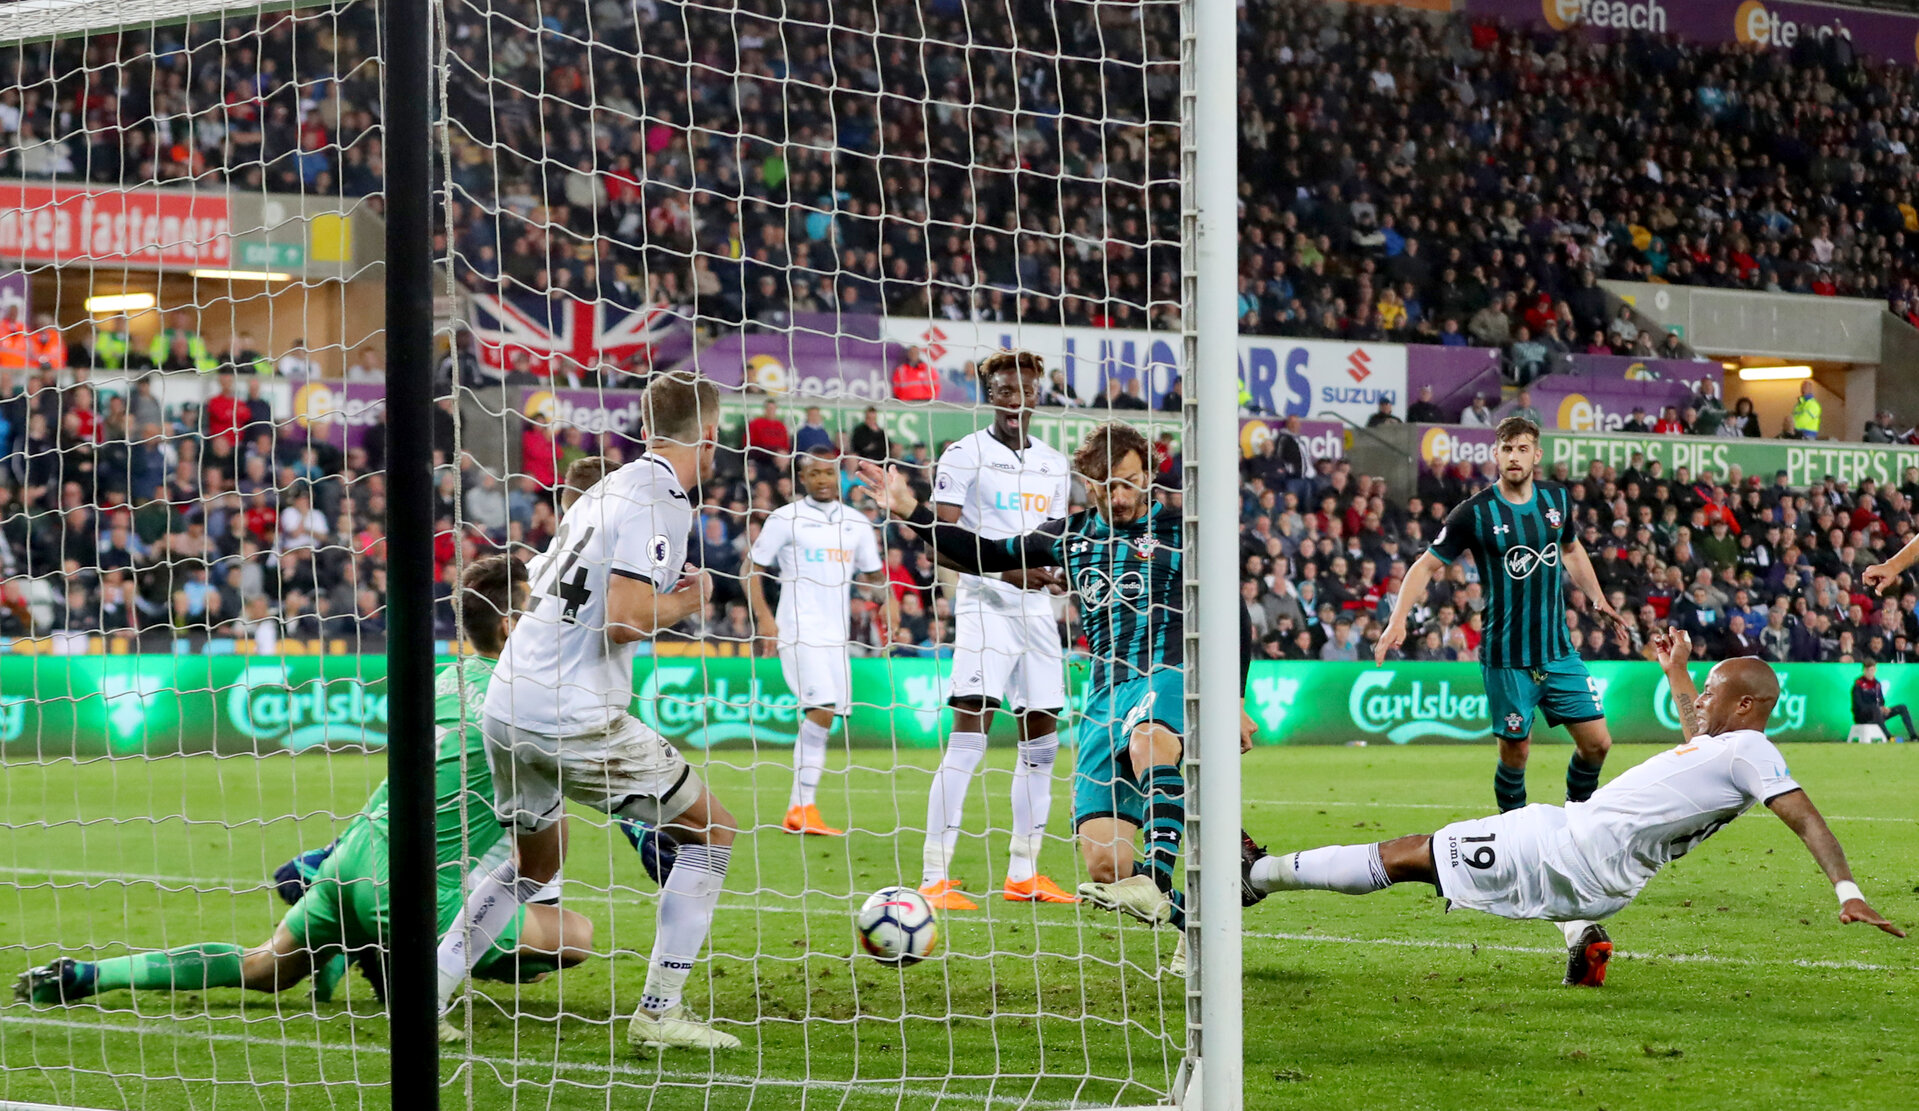 SWANSEA, WALES - MAY 08: Manolo Gabbiadini of Southampton scores during the Premier League match between Swansea City and Southampton at Liberty Stadium on May 8, 2018 in Swansea, Wales. (Photo by Matt Watson/Southampton FC via Getty Images)